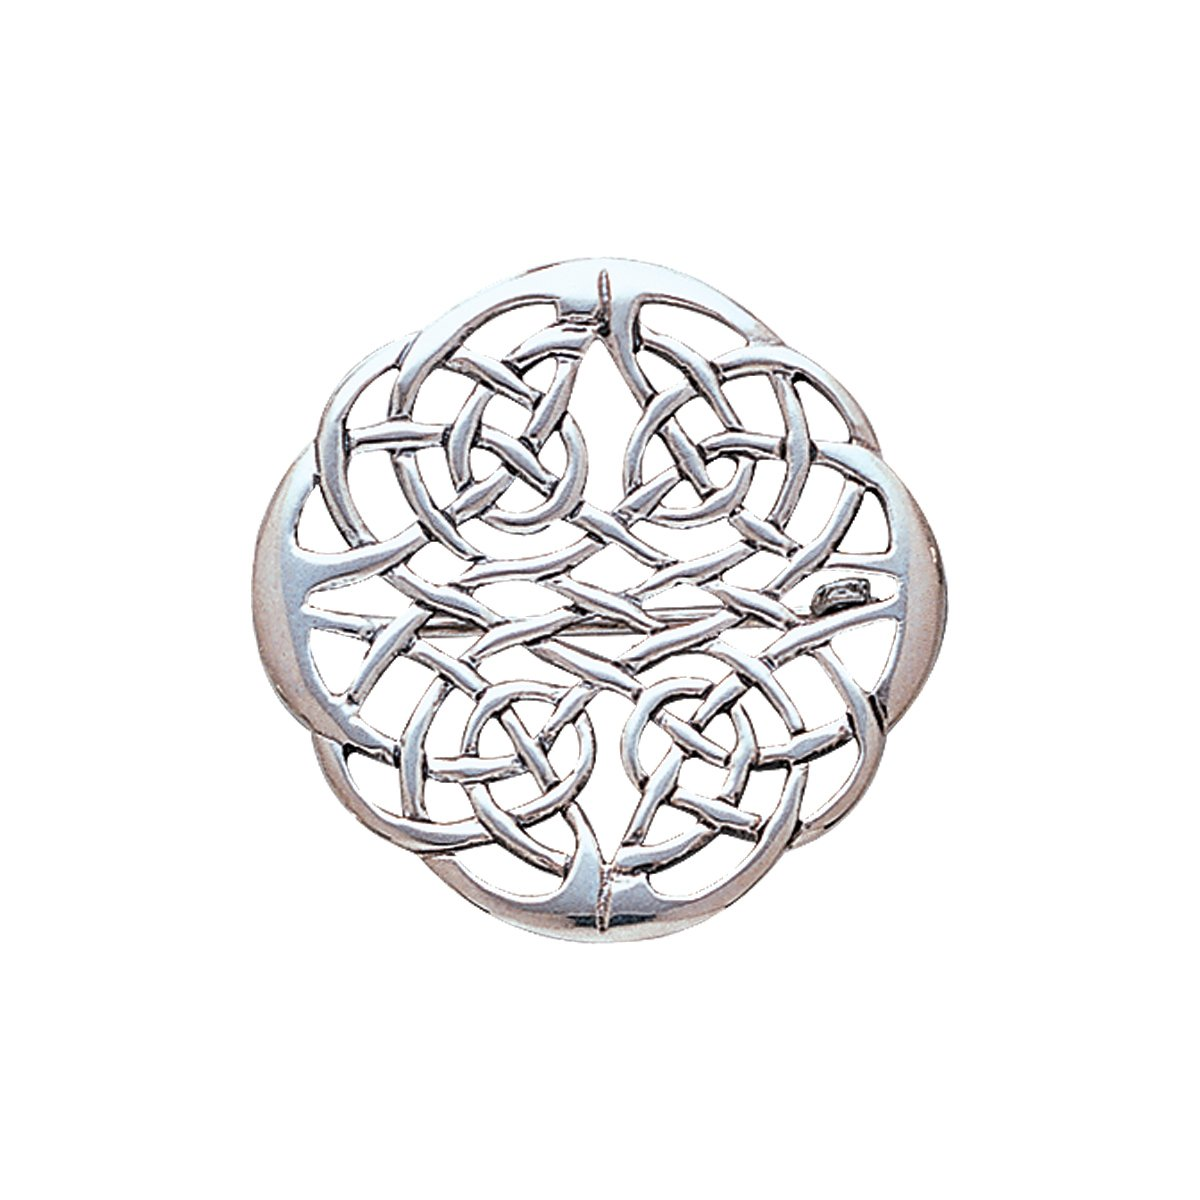 Jewelry Trends Sterling Silver Round Elegant Celtic Knot Work Brooch Pin by Jewelry Trends (Image #1)